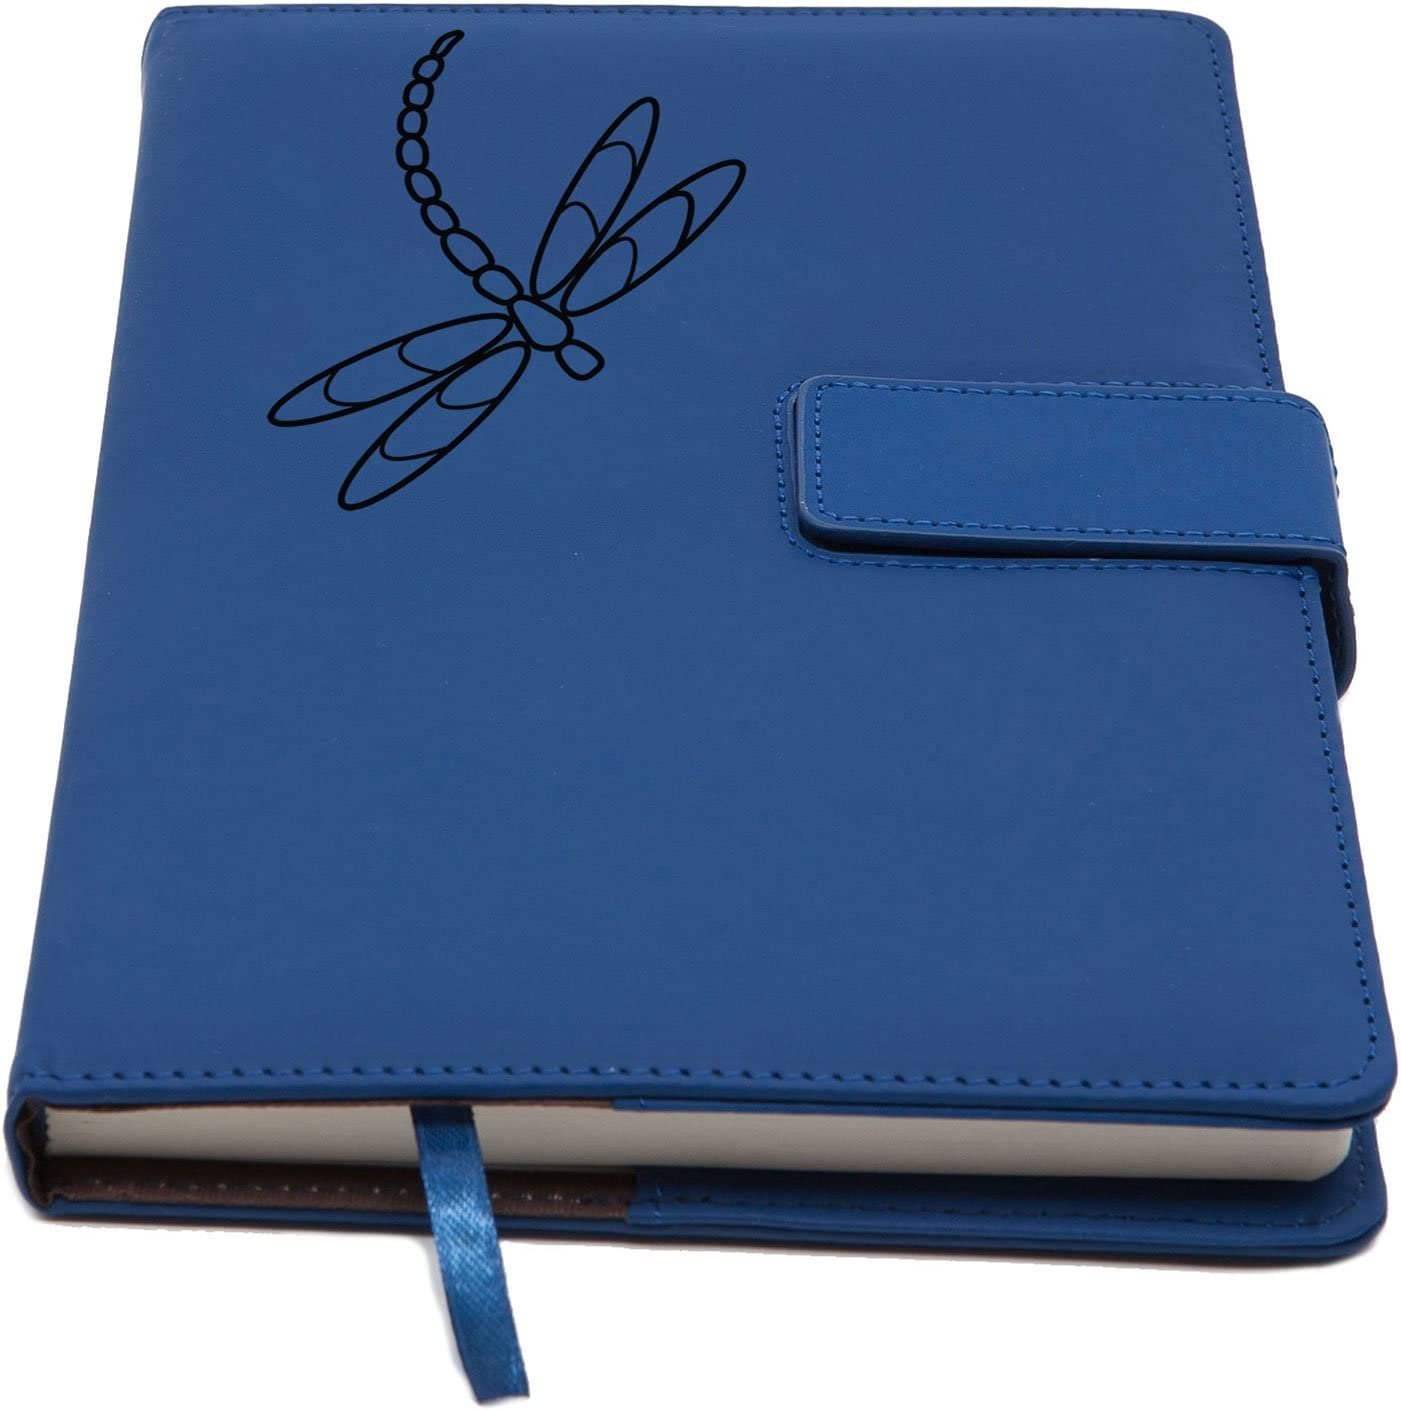 The Dragonfly Refillable Writing Journal | Magnetic Faux Leather Journal, 5 x 8 Inch, 200 Lined Pages Travel Personal Diary, Quality Notebooks and Journals for Men and Women from The Amazing Office